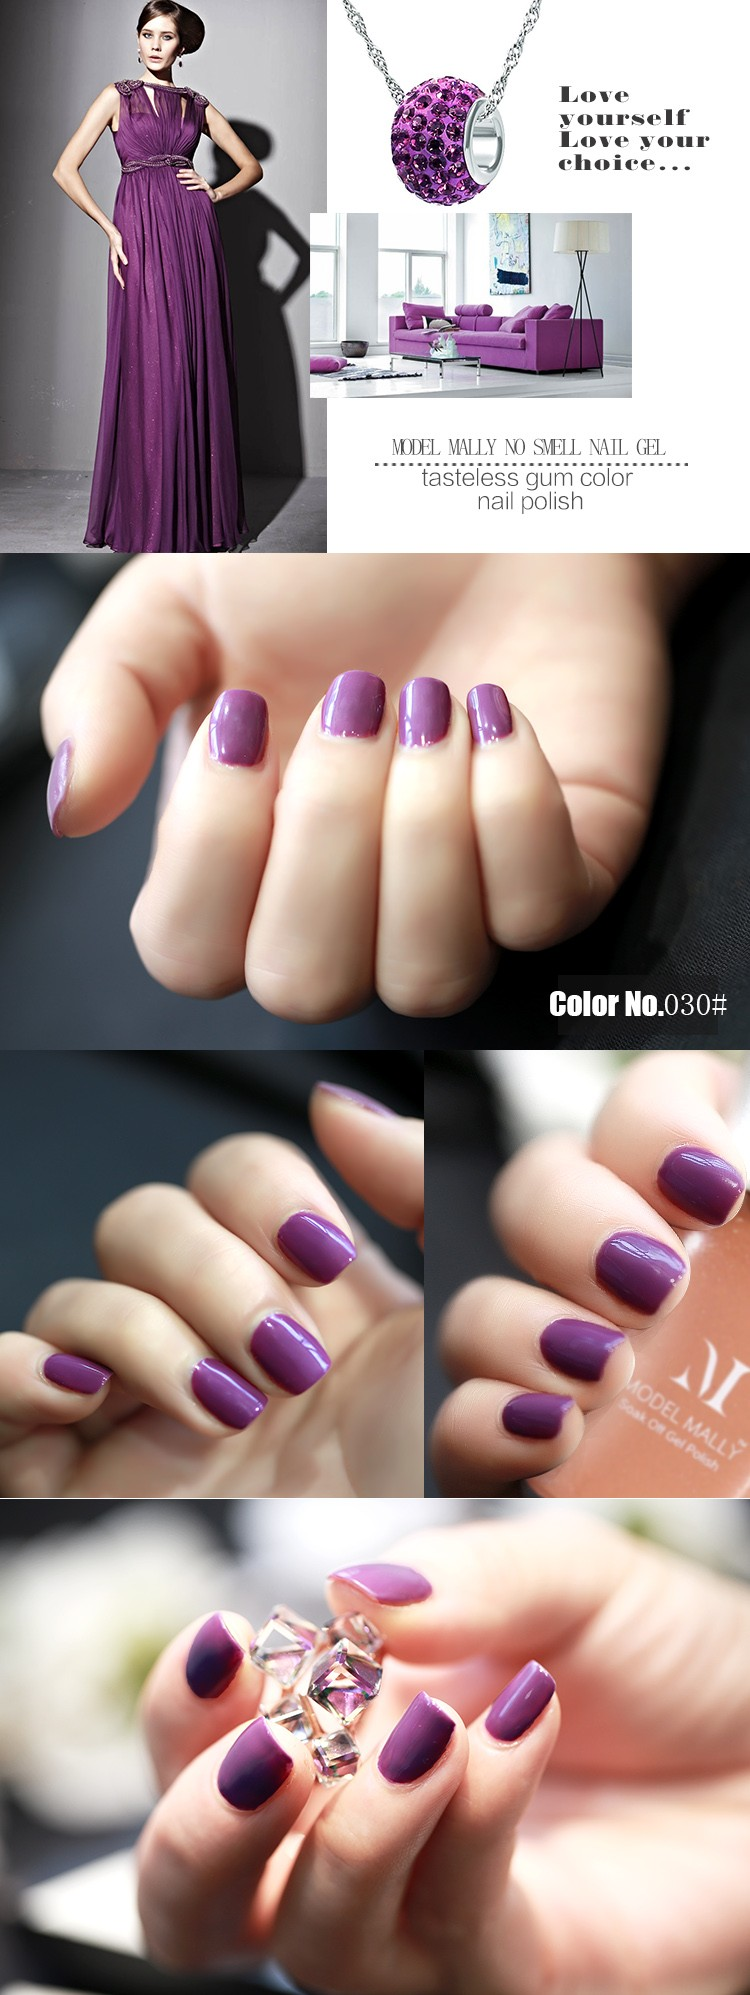 how to get gel nail polish off acrylic nails